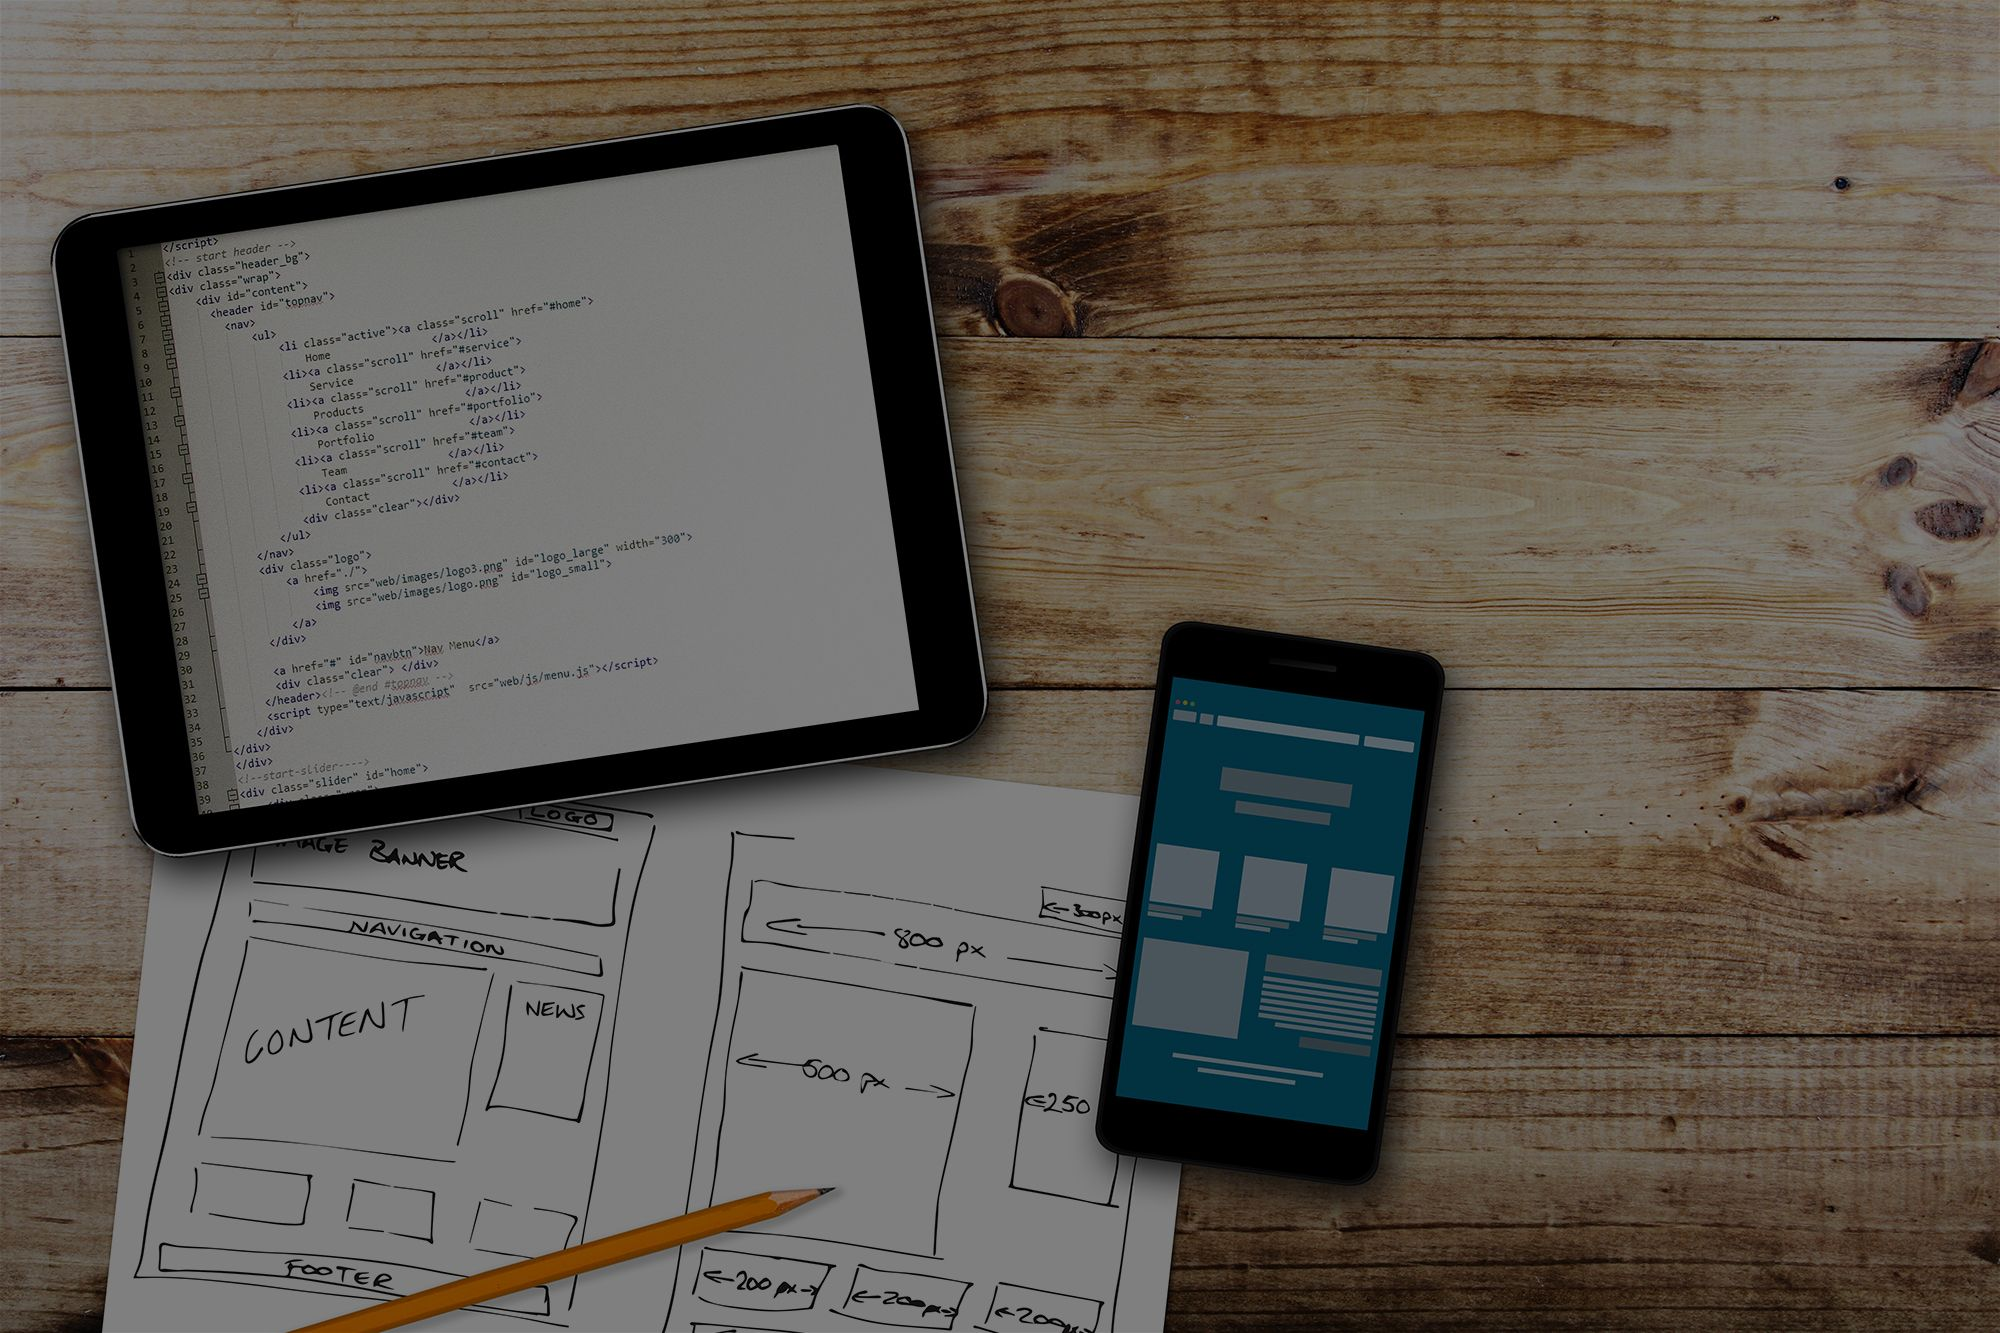 trueITpros website wireframe sketch and programming code on digital tablet